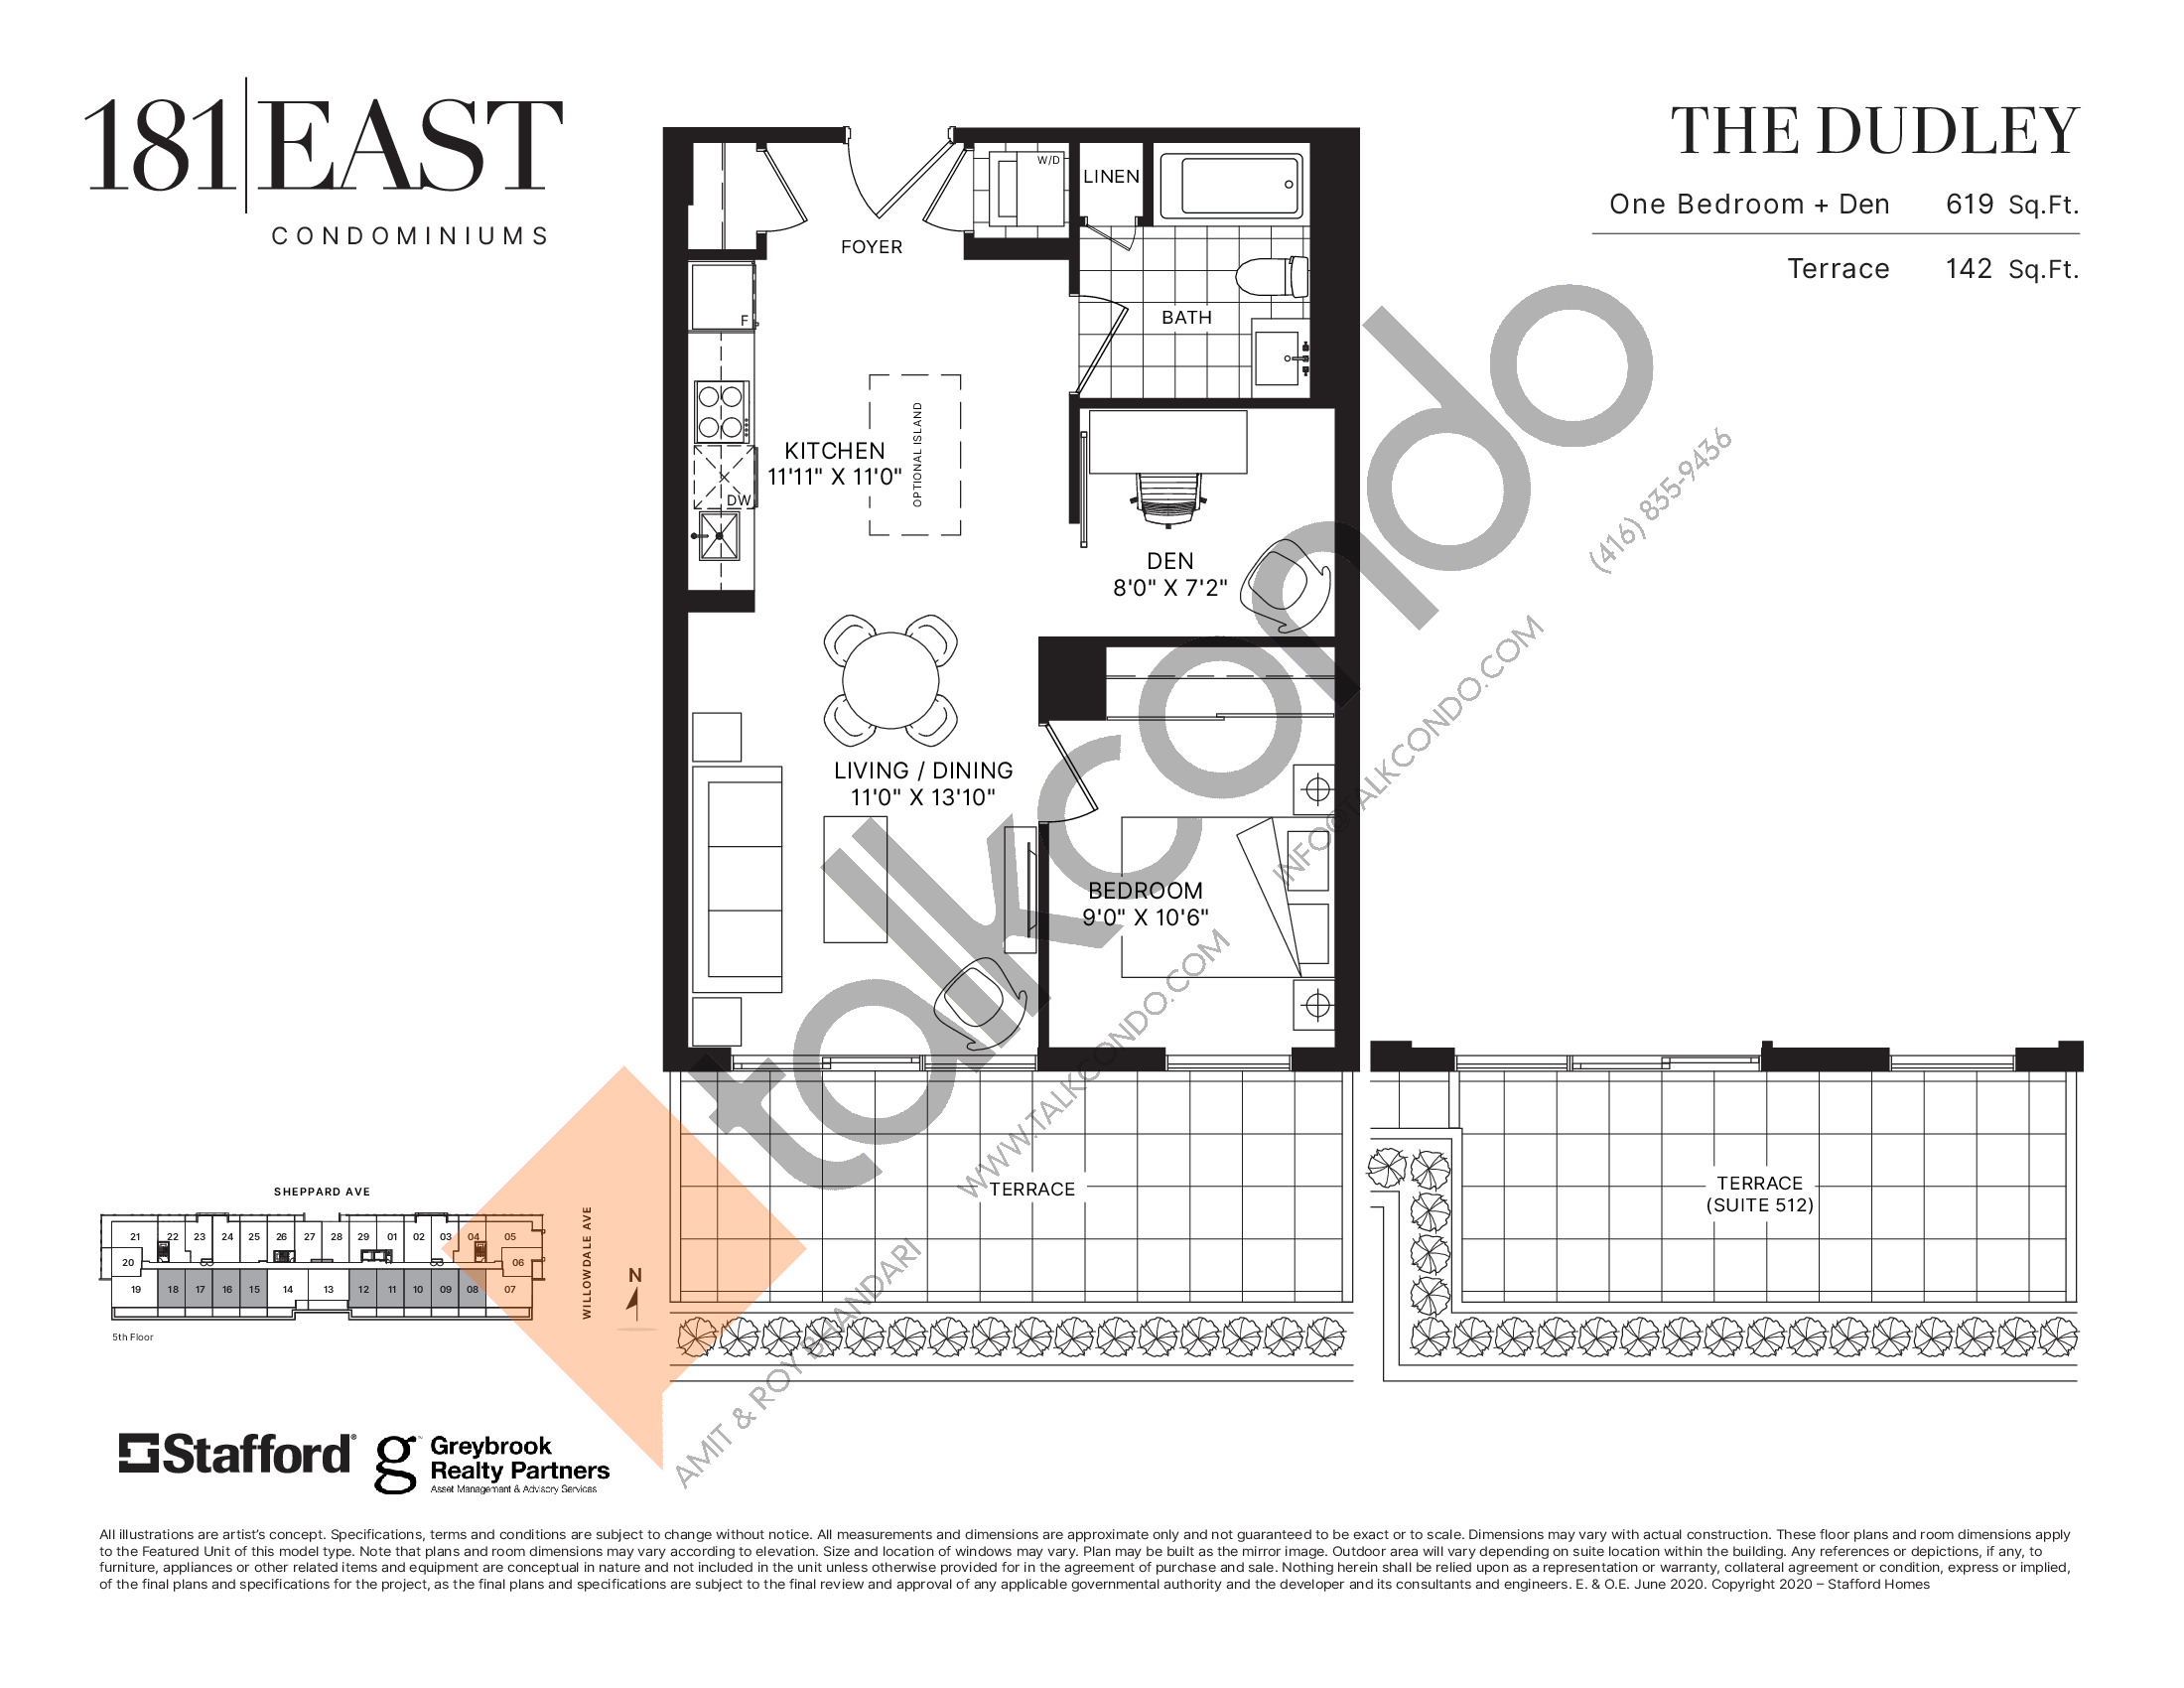 The Dudley Floor Plan at 181 East Condos - 619 sq.ft